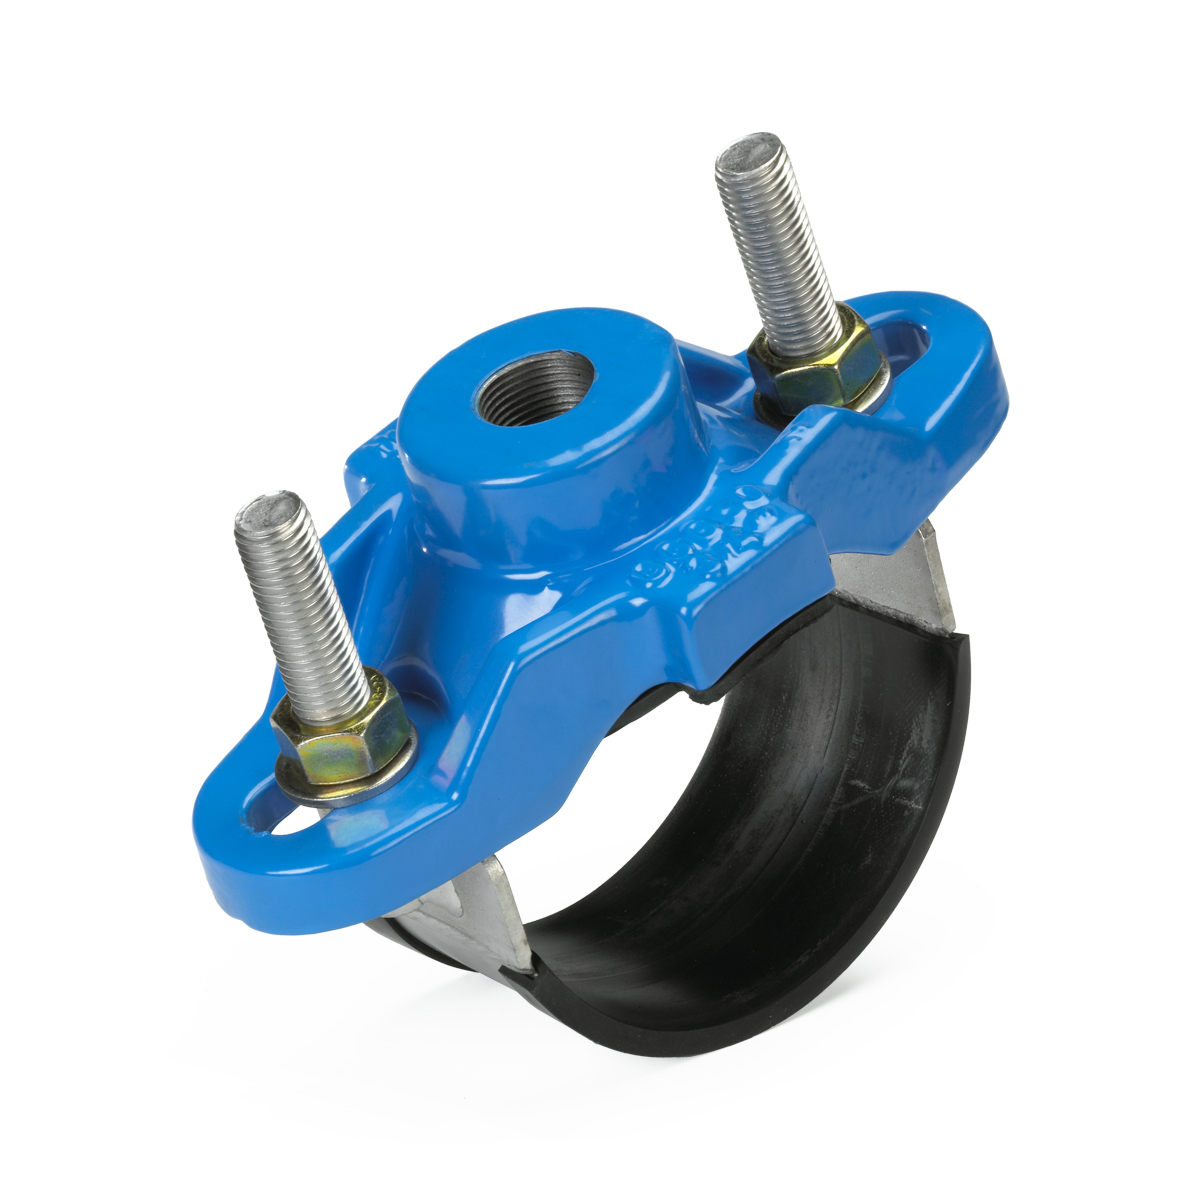 Ductile iron tapping saddle